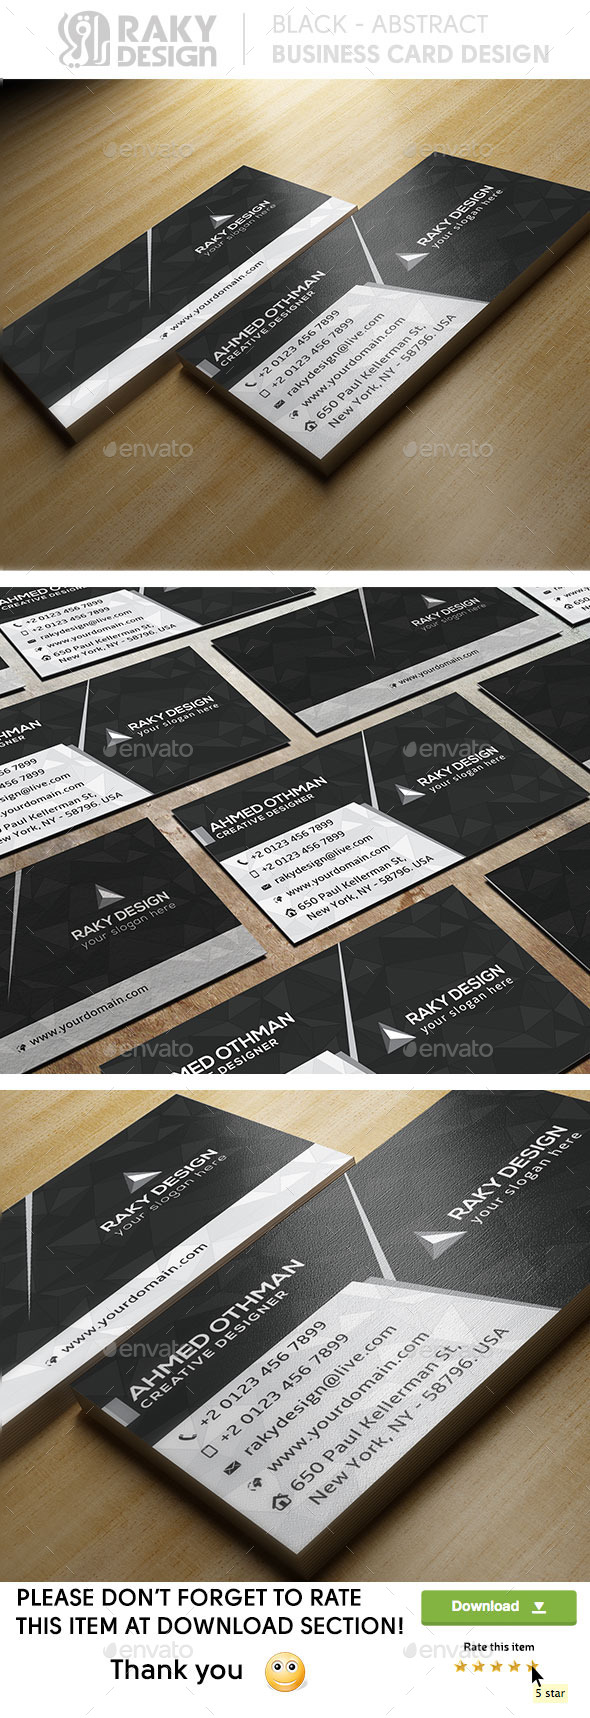 Black Abstract Business Card - Corporate Business Cards